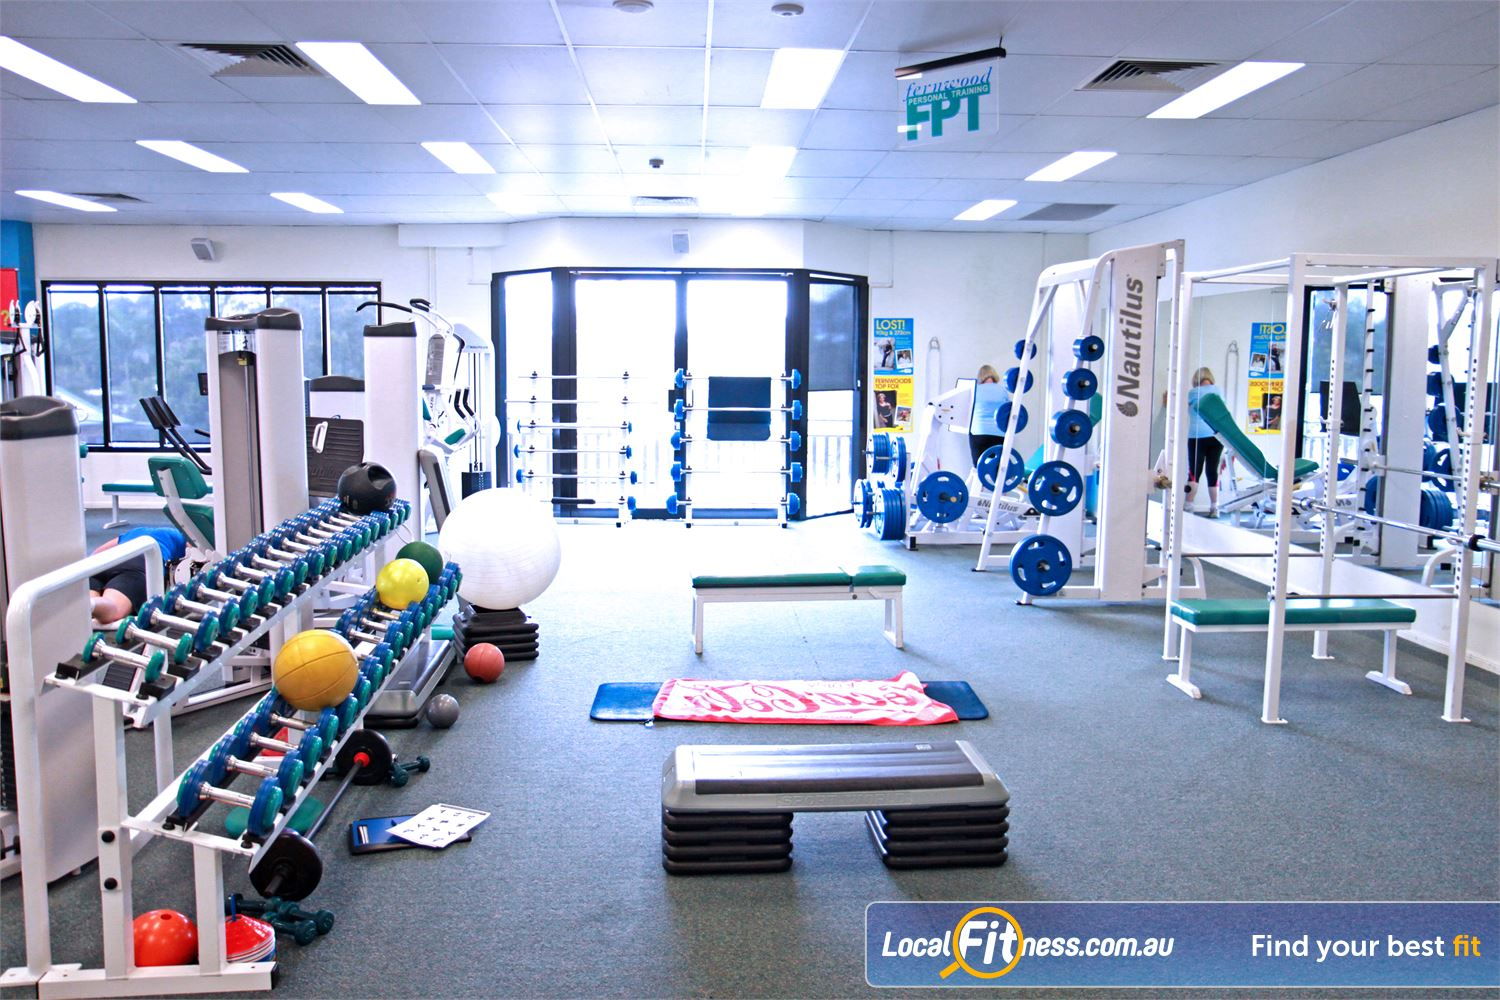 Fernwood Fitness Petrie We provide the right fitness and weights to help women lose weight.